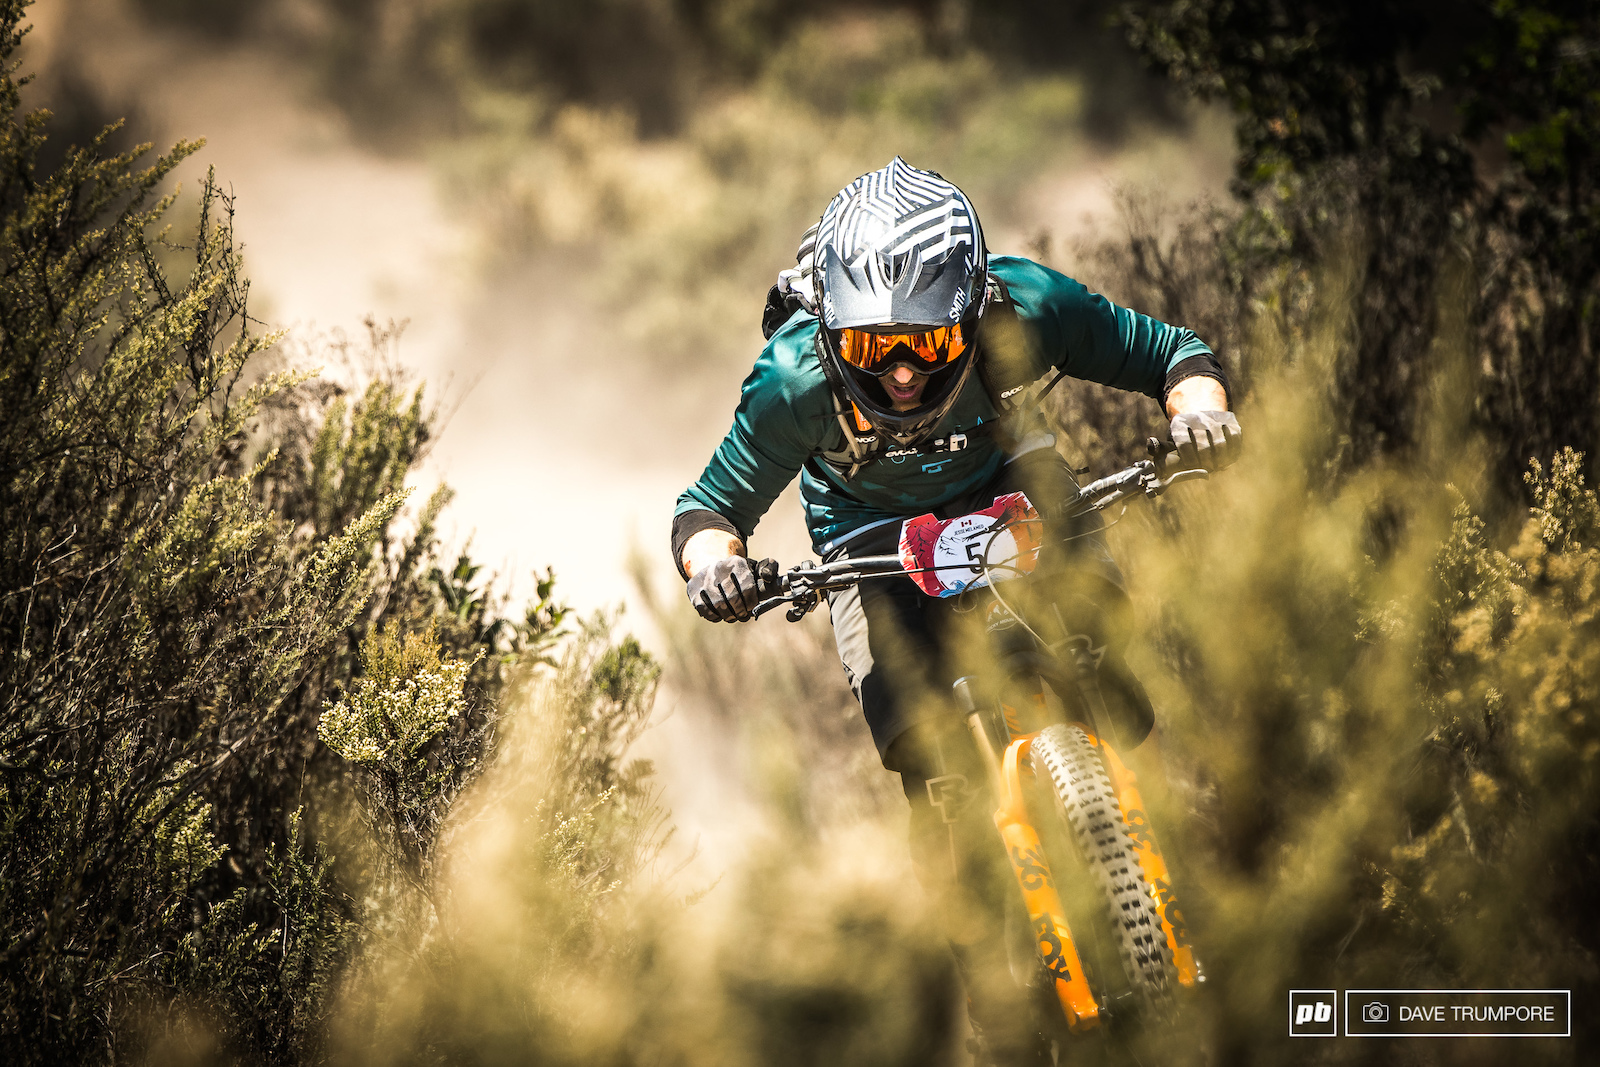 Speed tucking to the beach and the win at his first multi-day blind race Jesse Melamed is definitely on a good pace to kick off the EWS season next month.